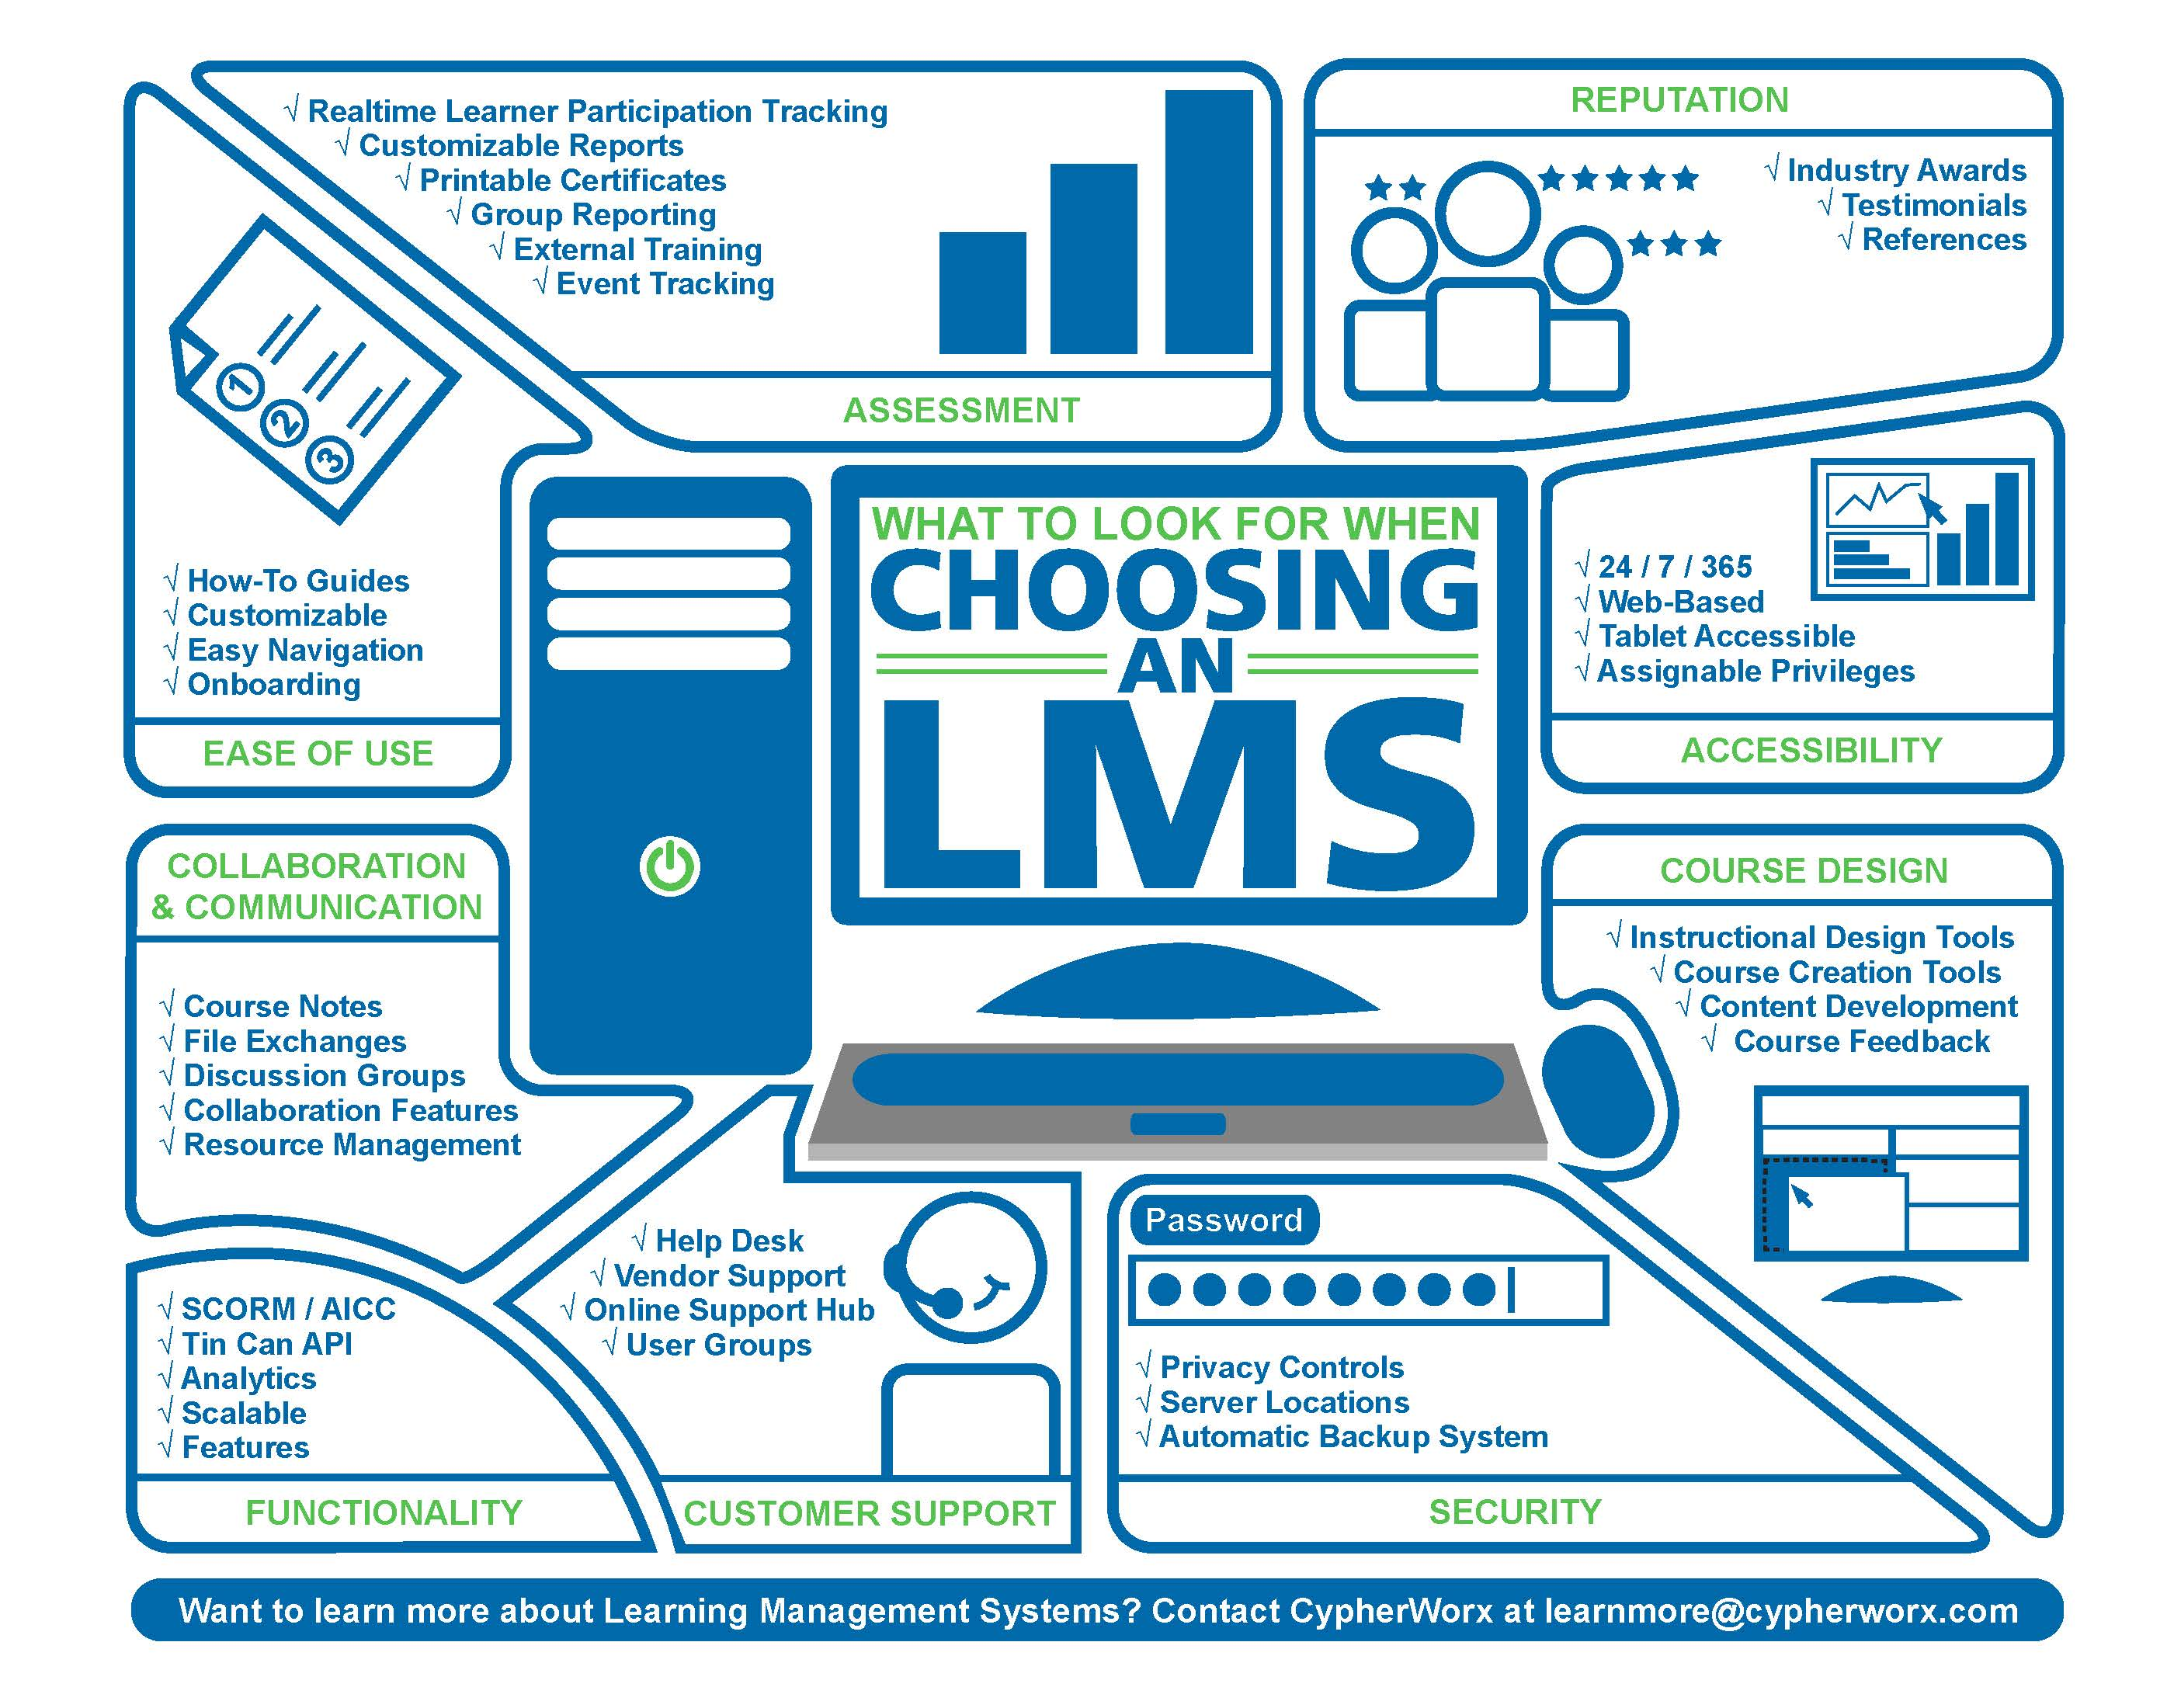 What to look for when choosing a Learning Management System